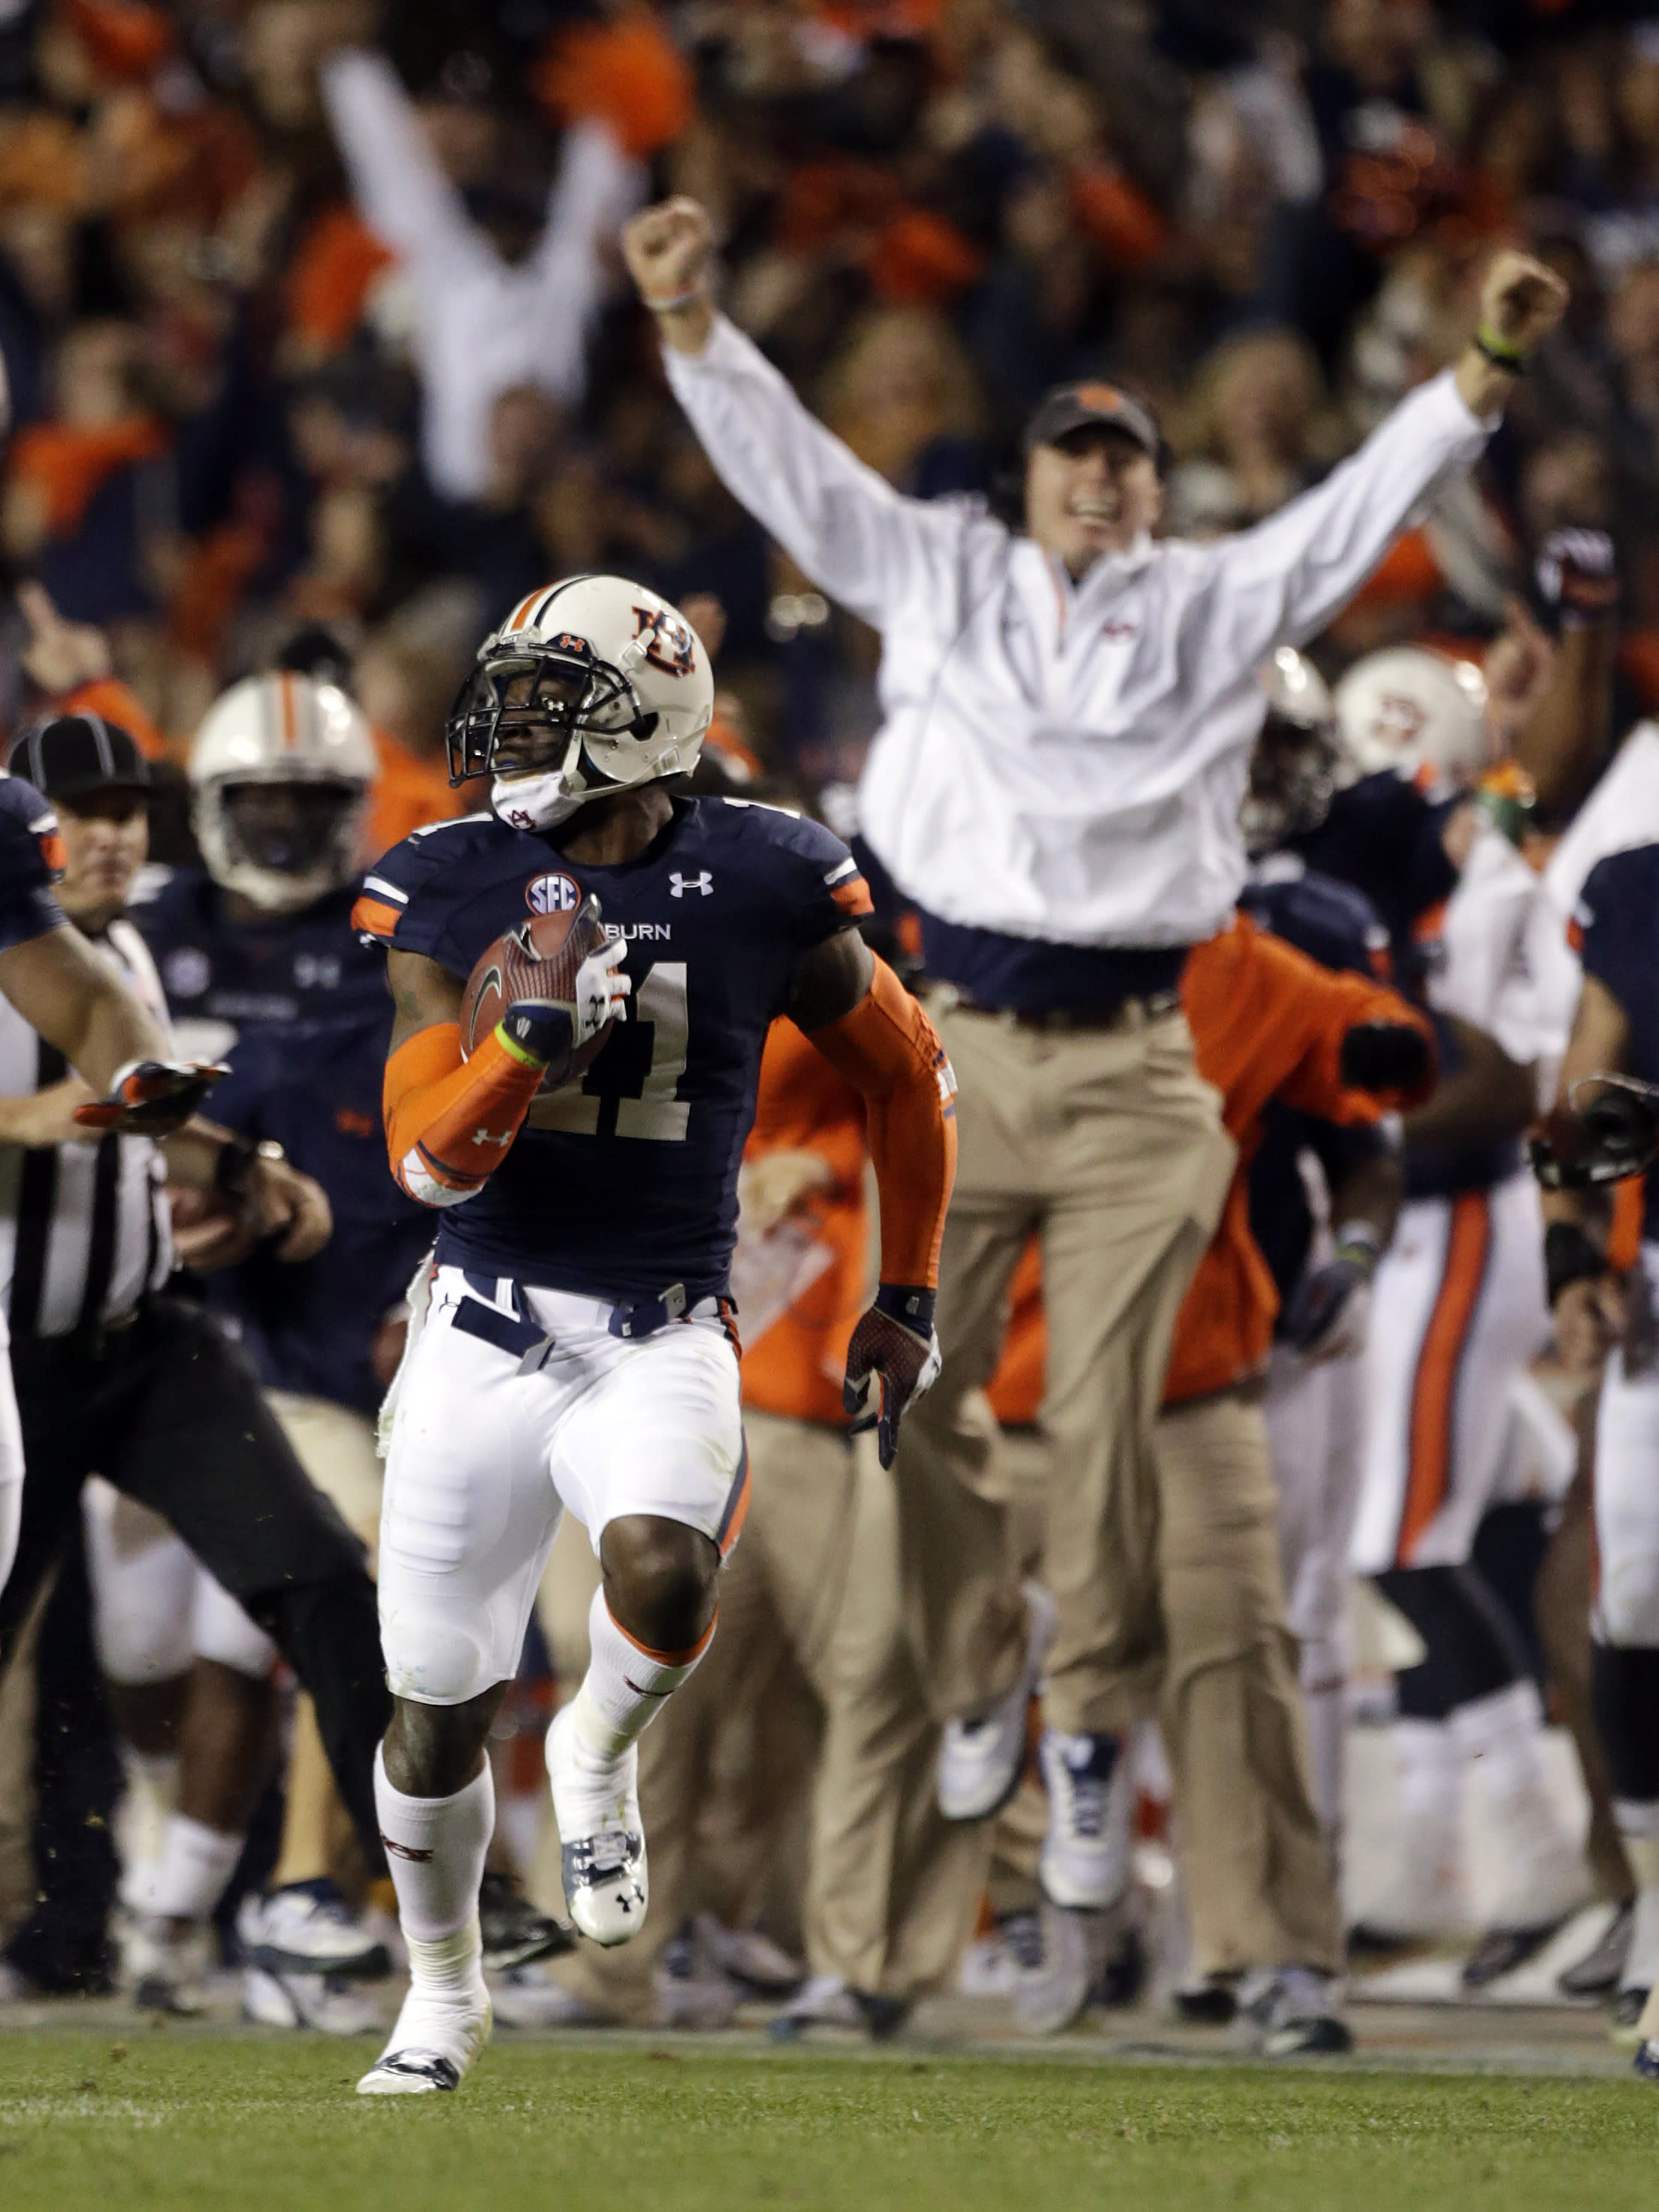 Auburn cornerback Chris Davis (11) returns a missed field goal attempt 100-plus yards to score the game-winning touchdown as time expired in the fourth quarter of an NCAA college football game against No. 1 Alabama in Auburn, Ala., Saturday, Nov. 30, 2013. Auburn won 34-28. (AP Photo/Dave Martin)